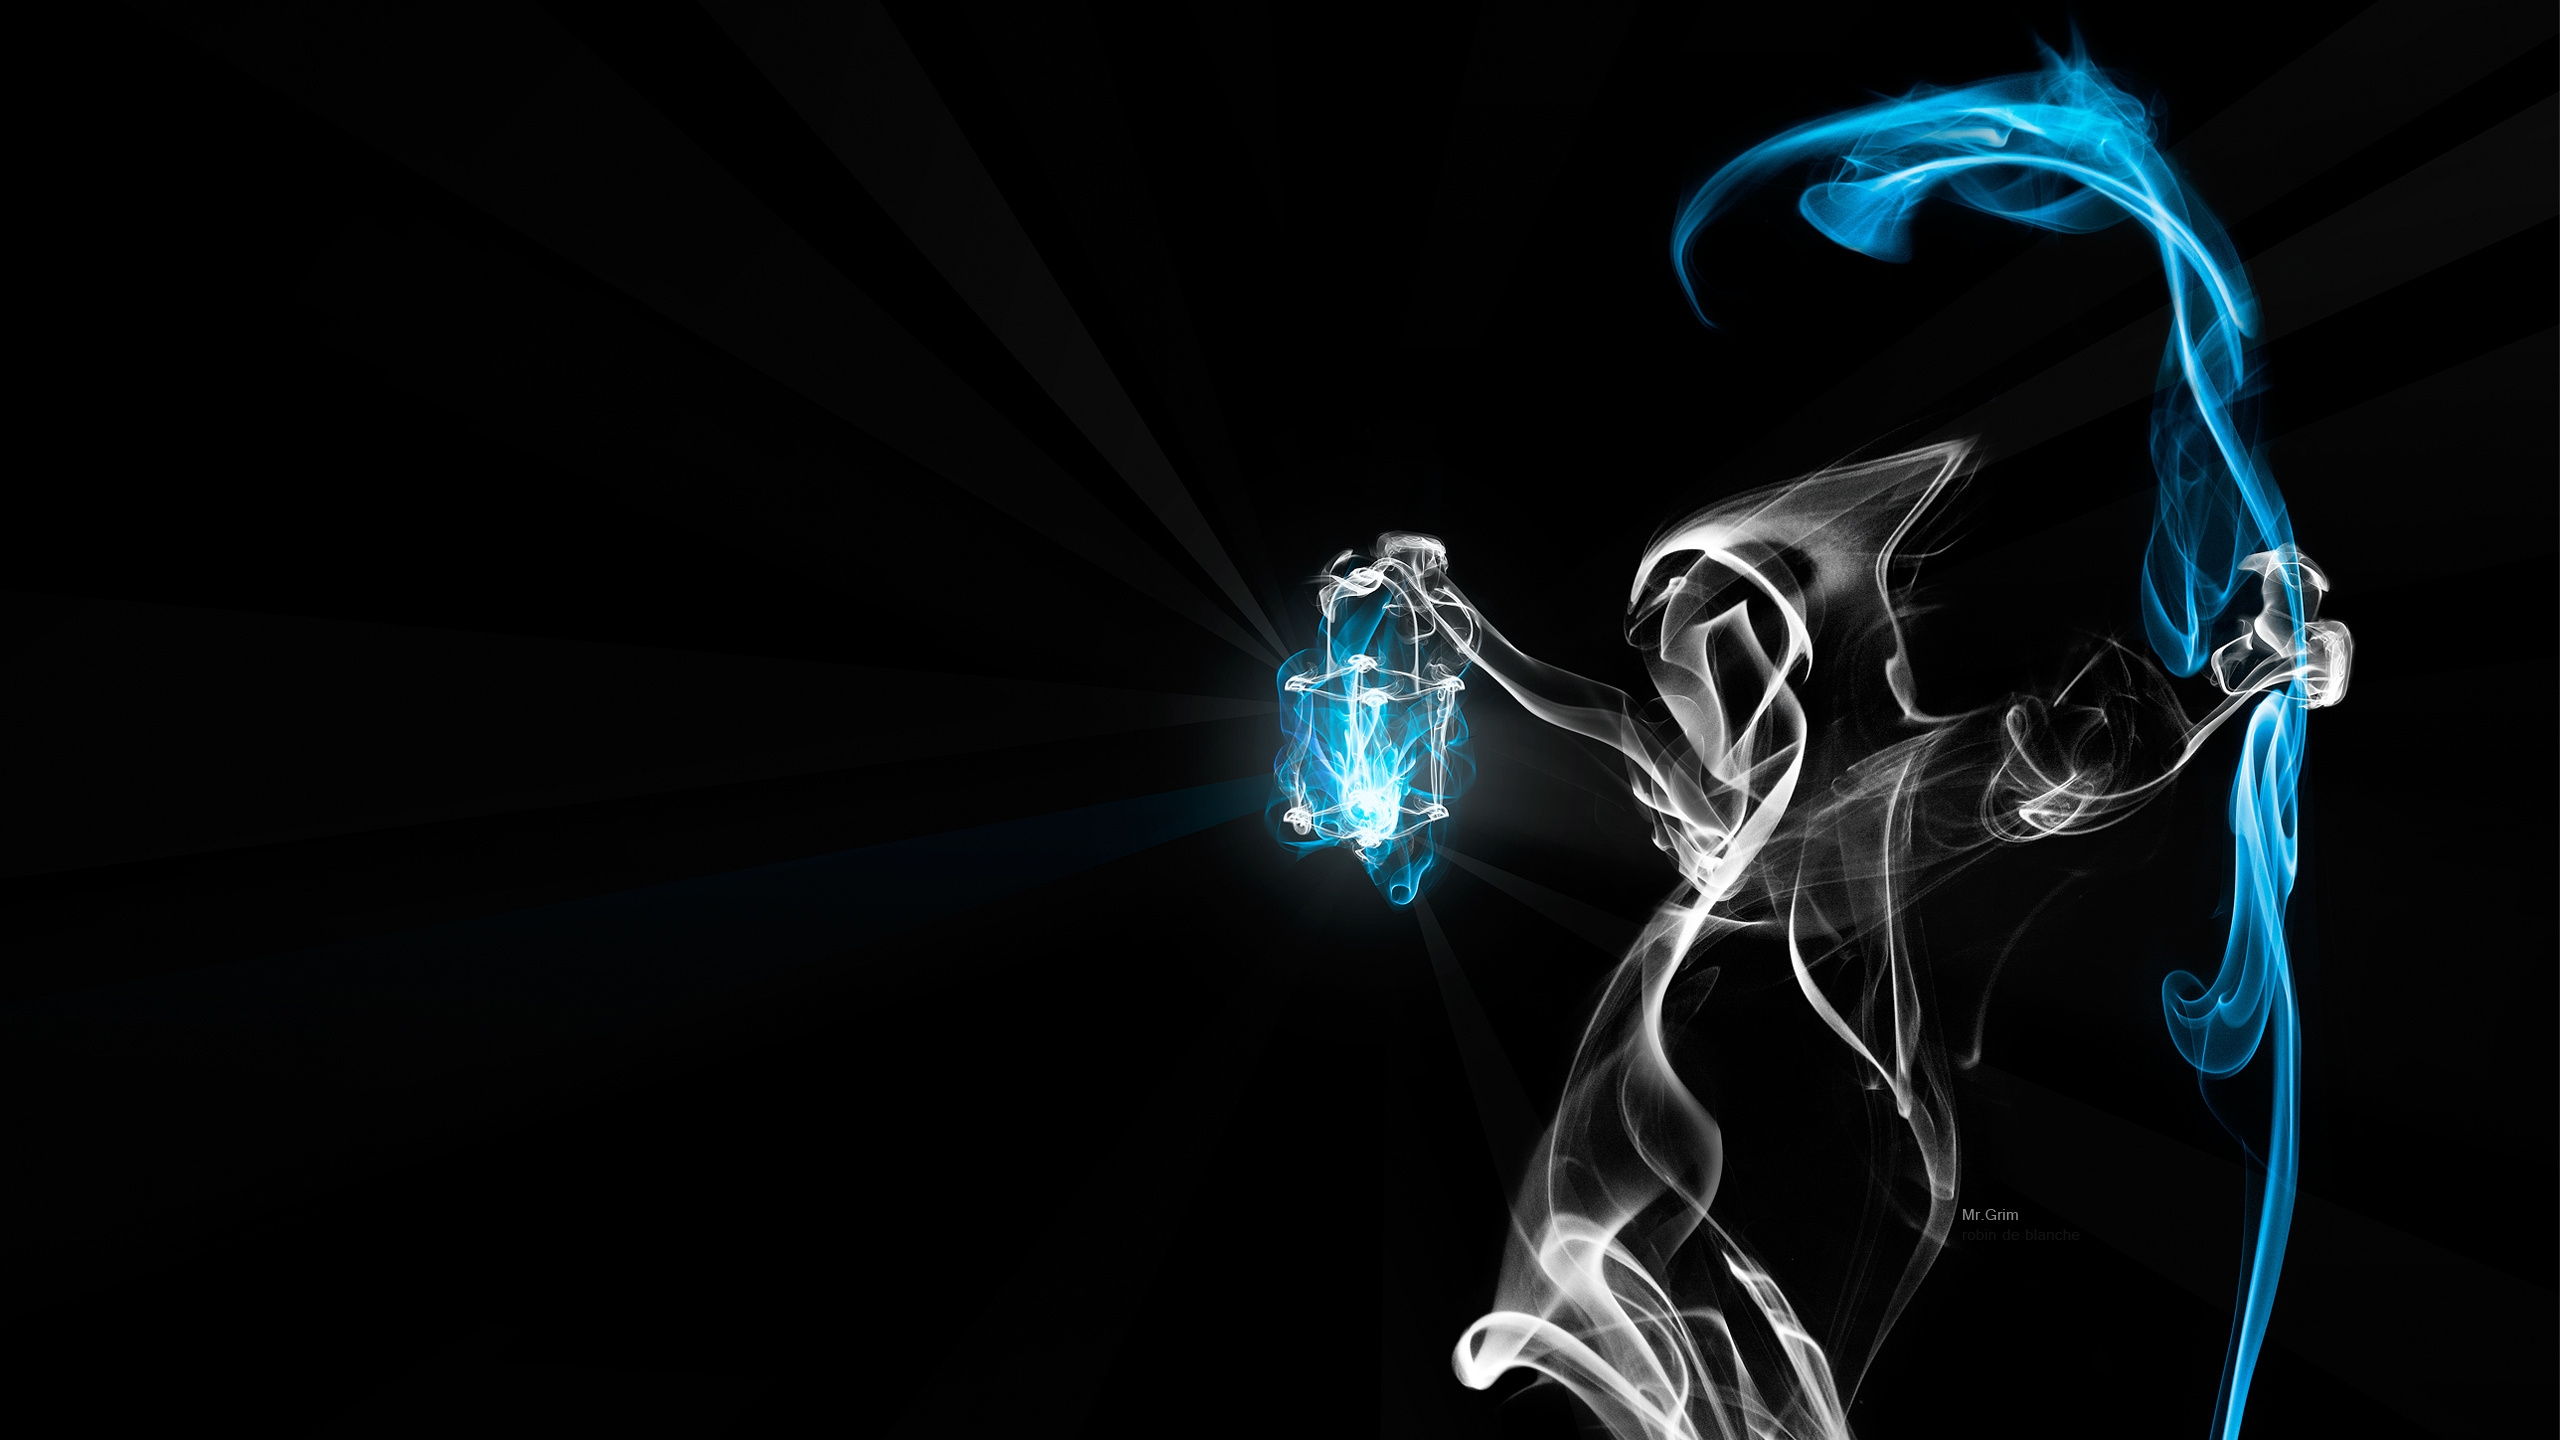 Cool neon wallpaper   SF Wallpaper 2560x1440